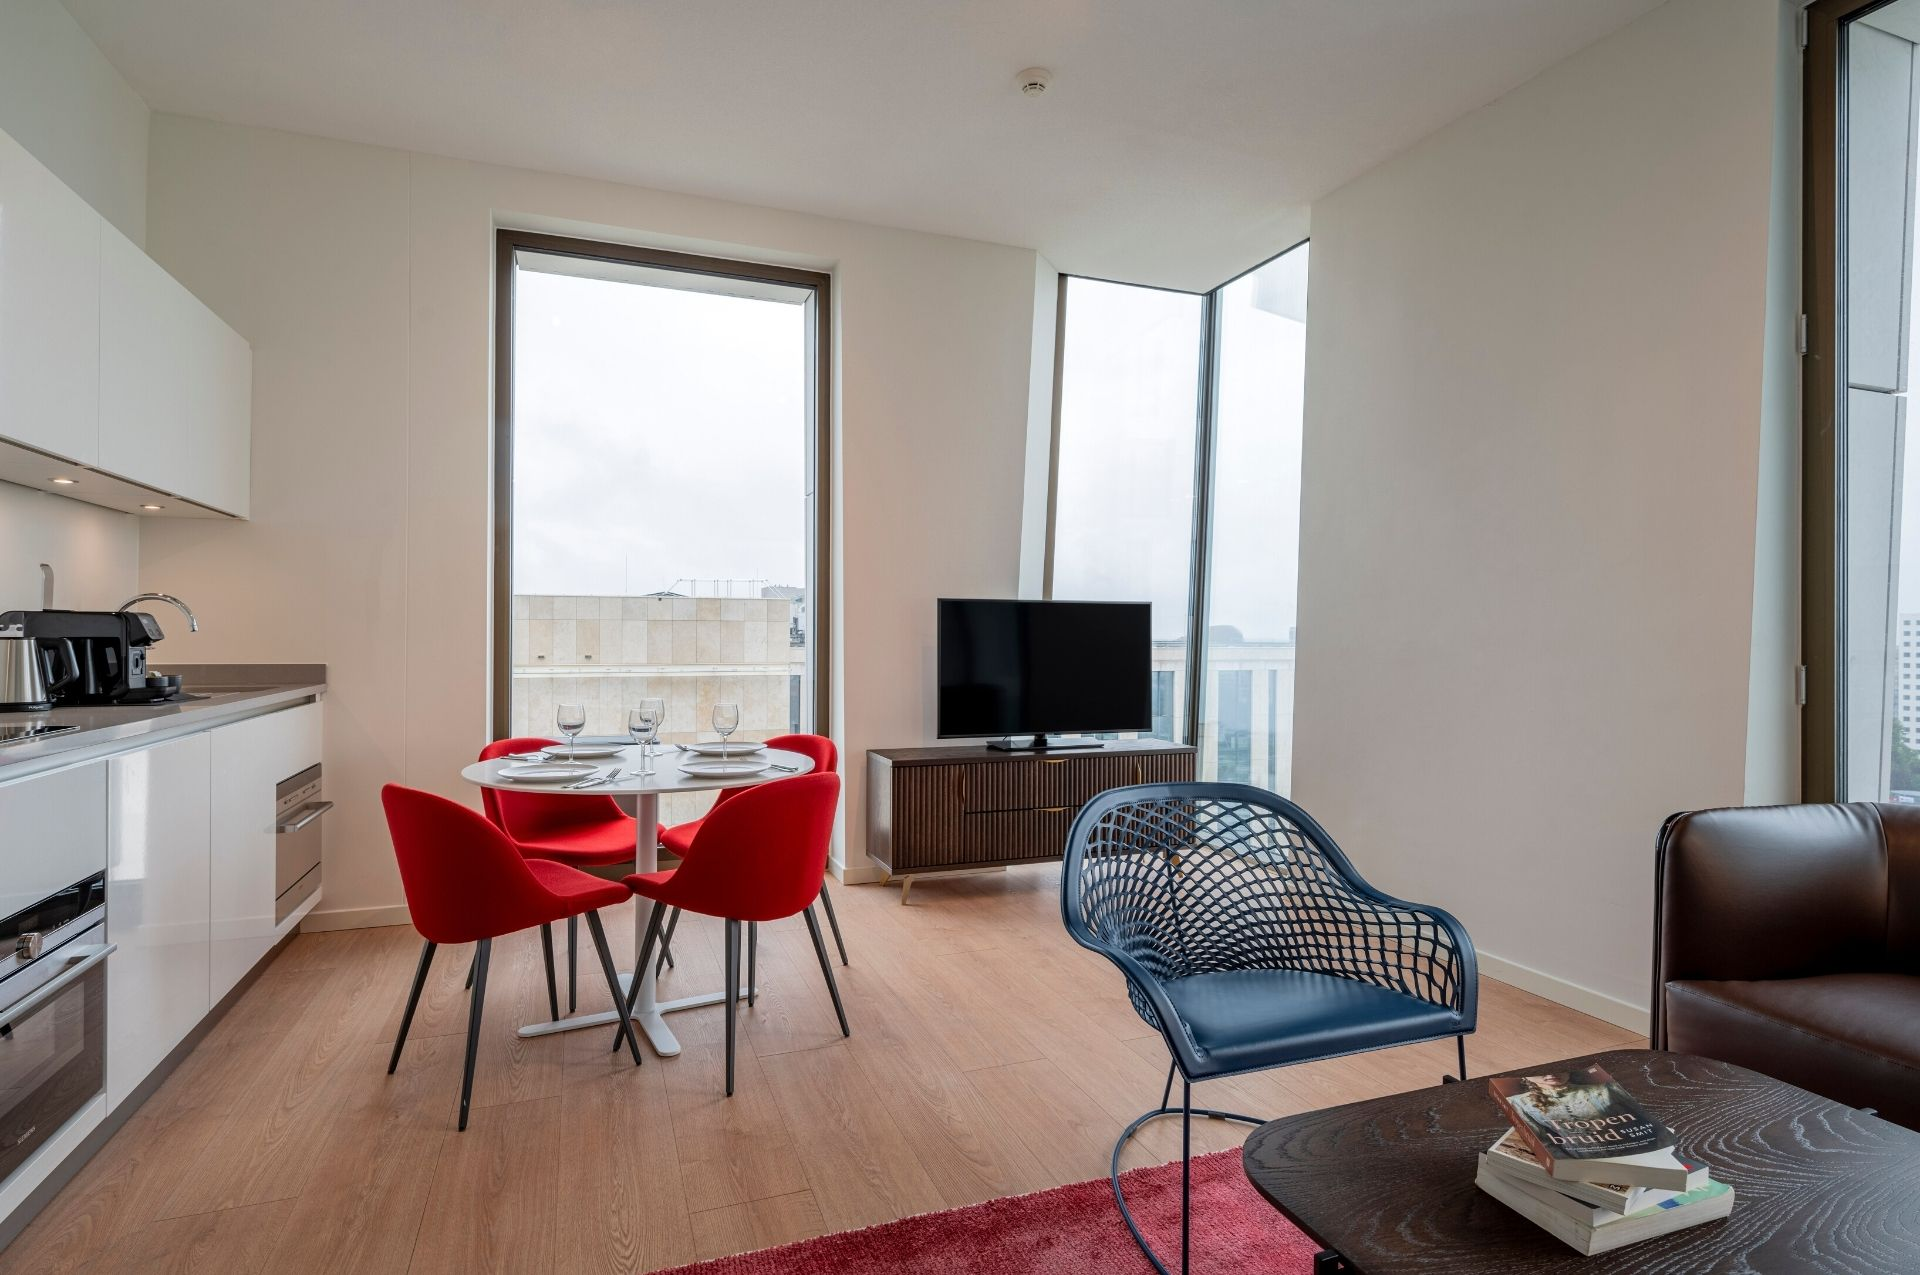 PREMIER SUITES PLUS Amsterdam Two Bedroom Apt Kitchen